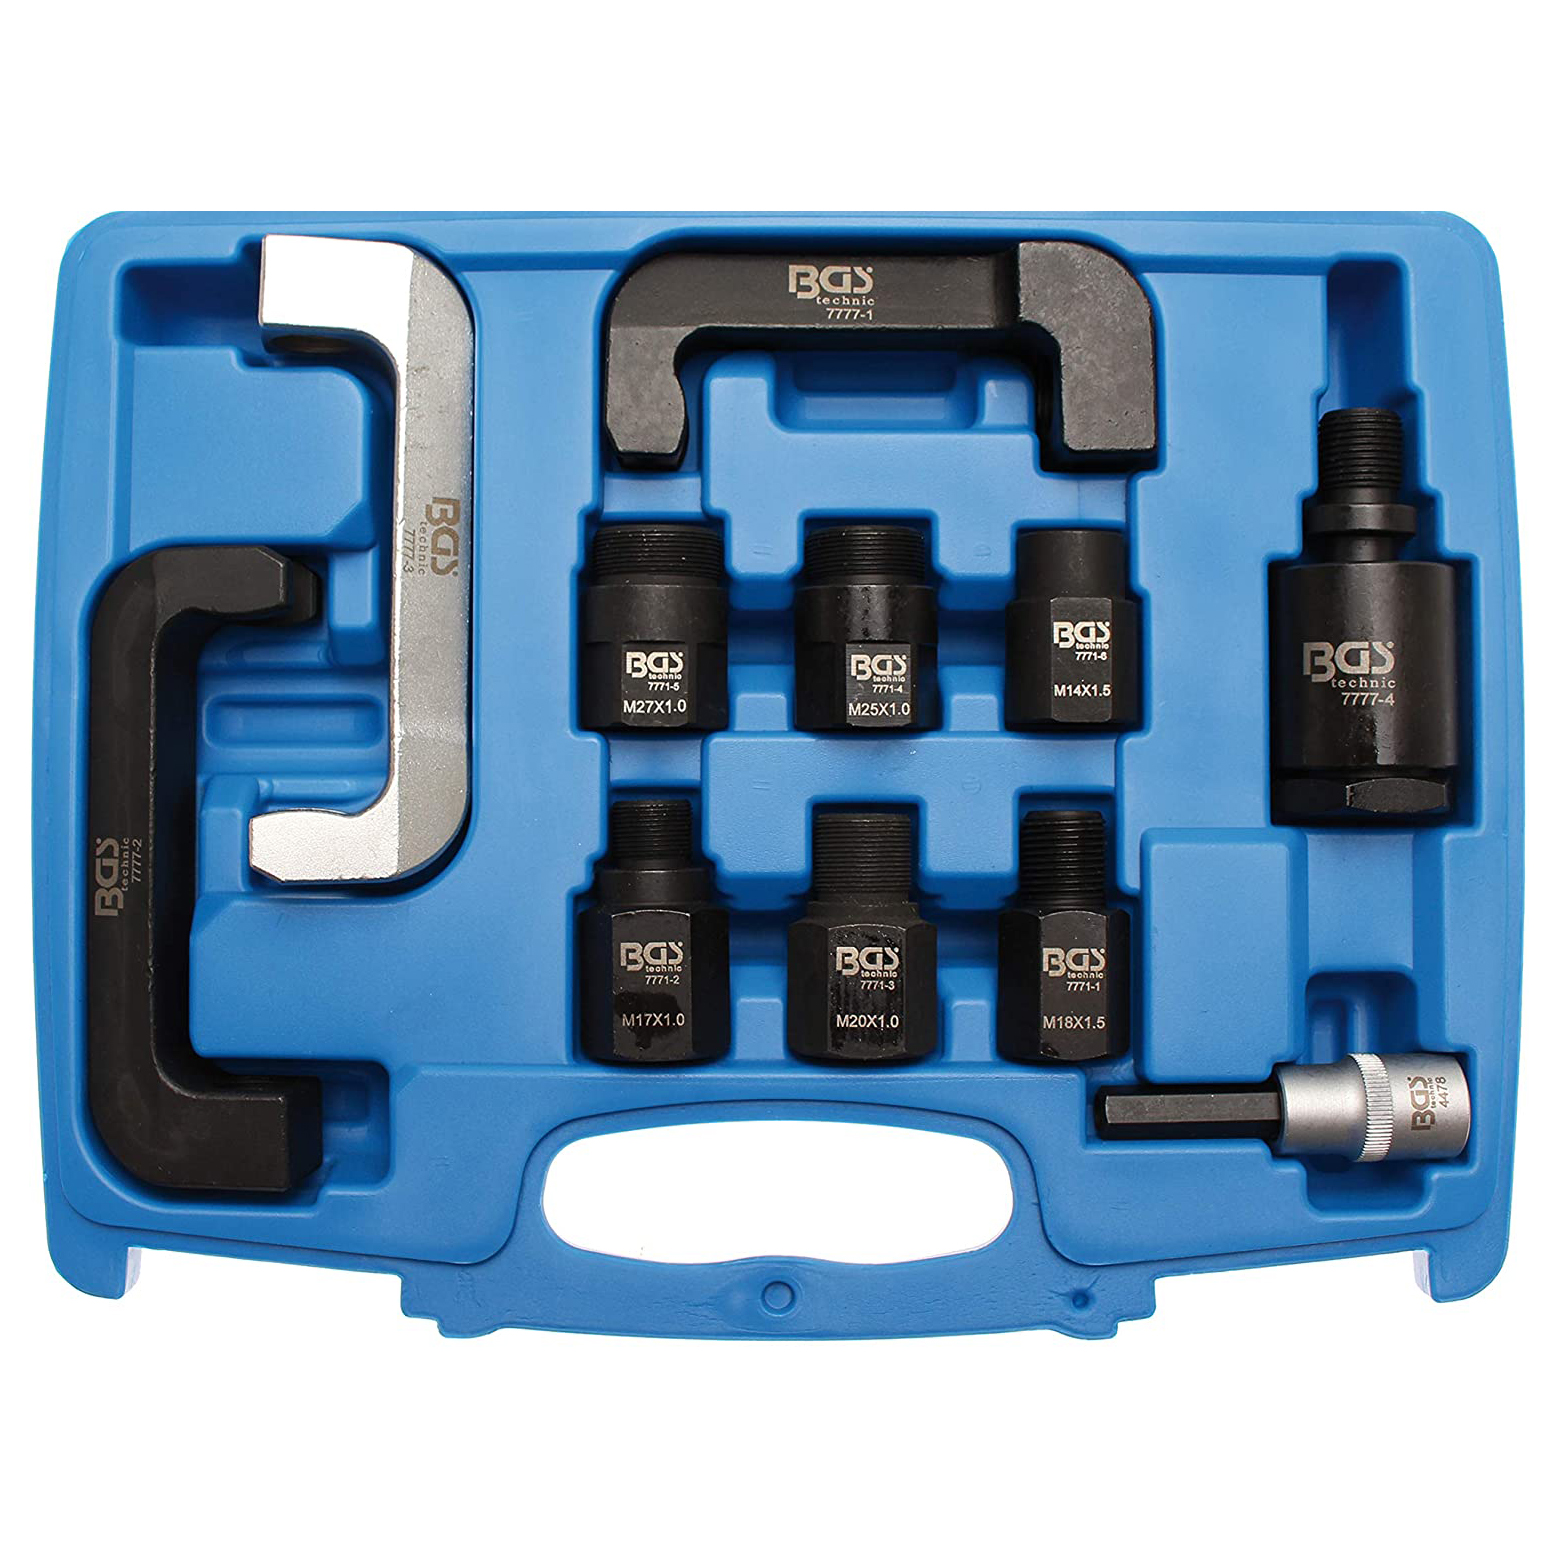 10Pcs Diesel Injector Removal Set For JTC MERCEDES BENZ  Removal Adapter Tool Set Kit